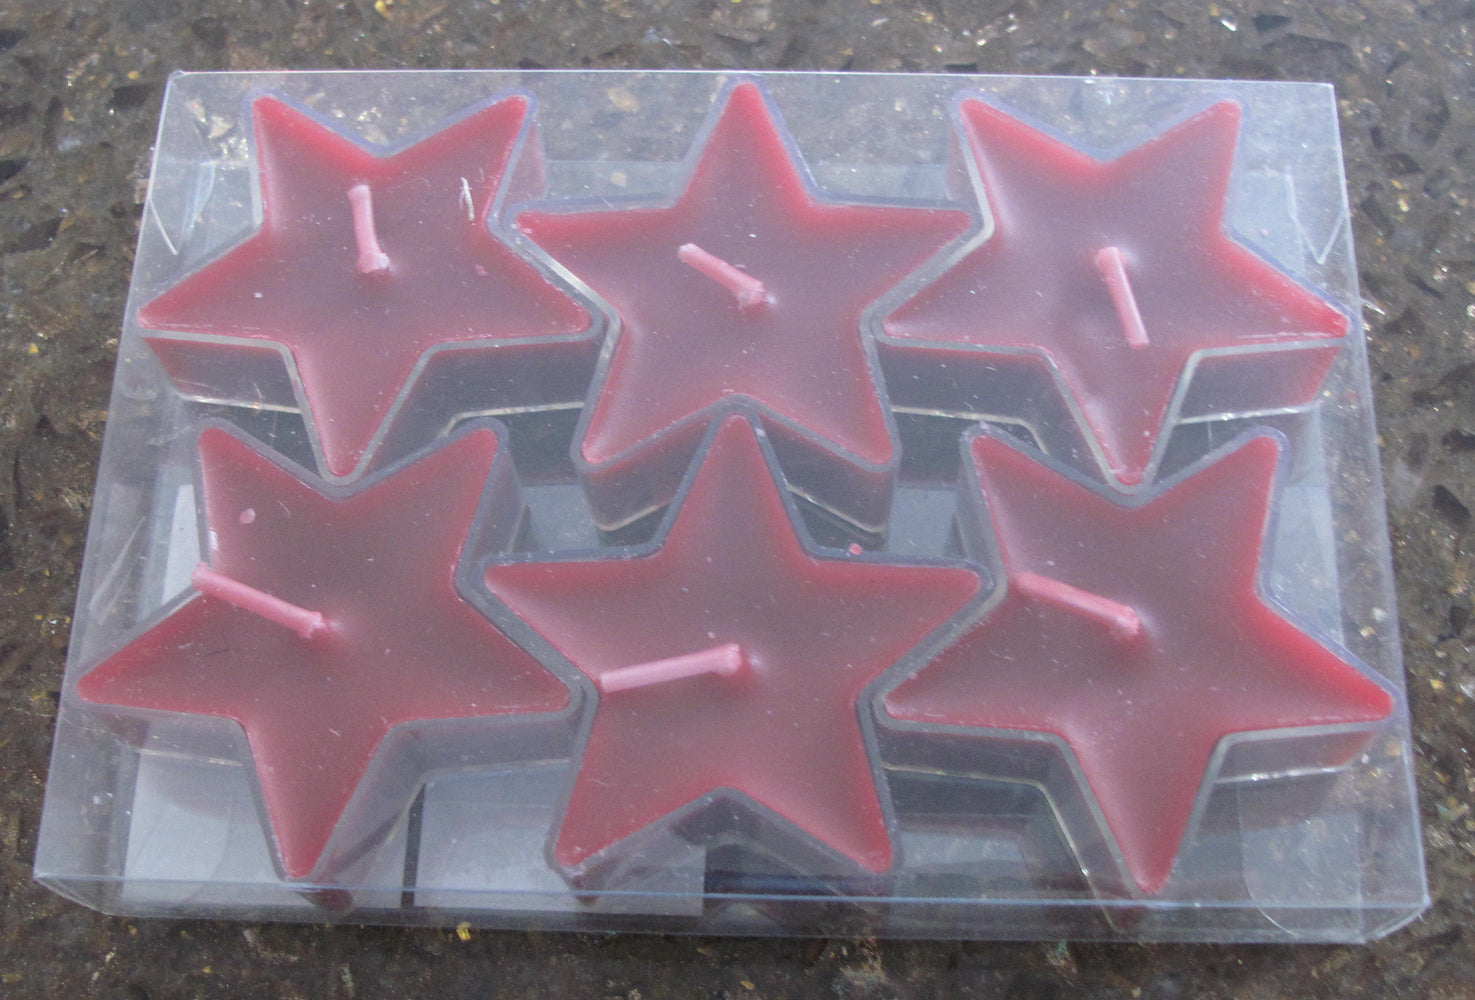 Red Star Tealights